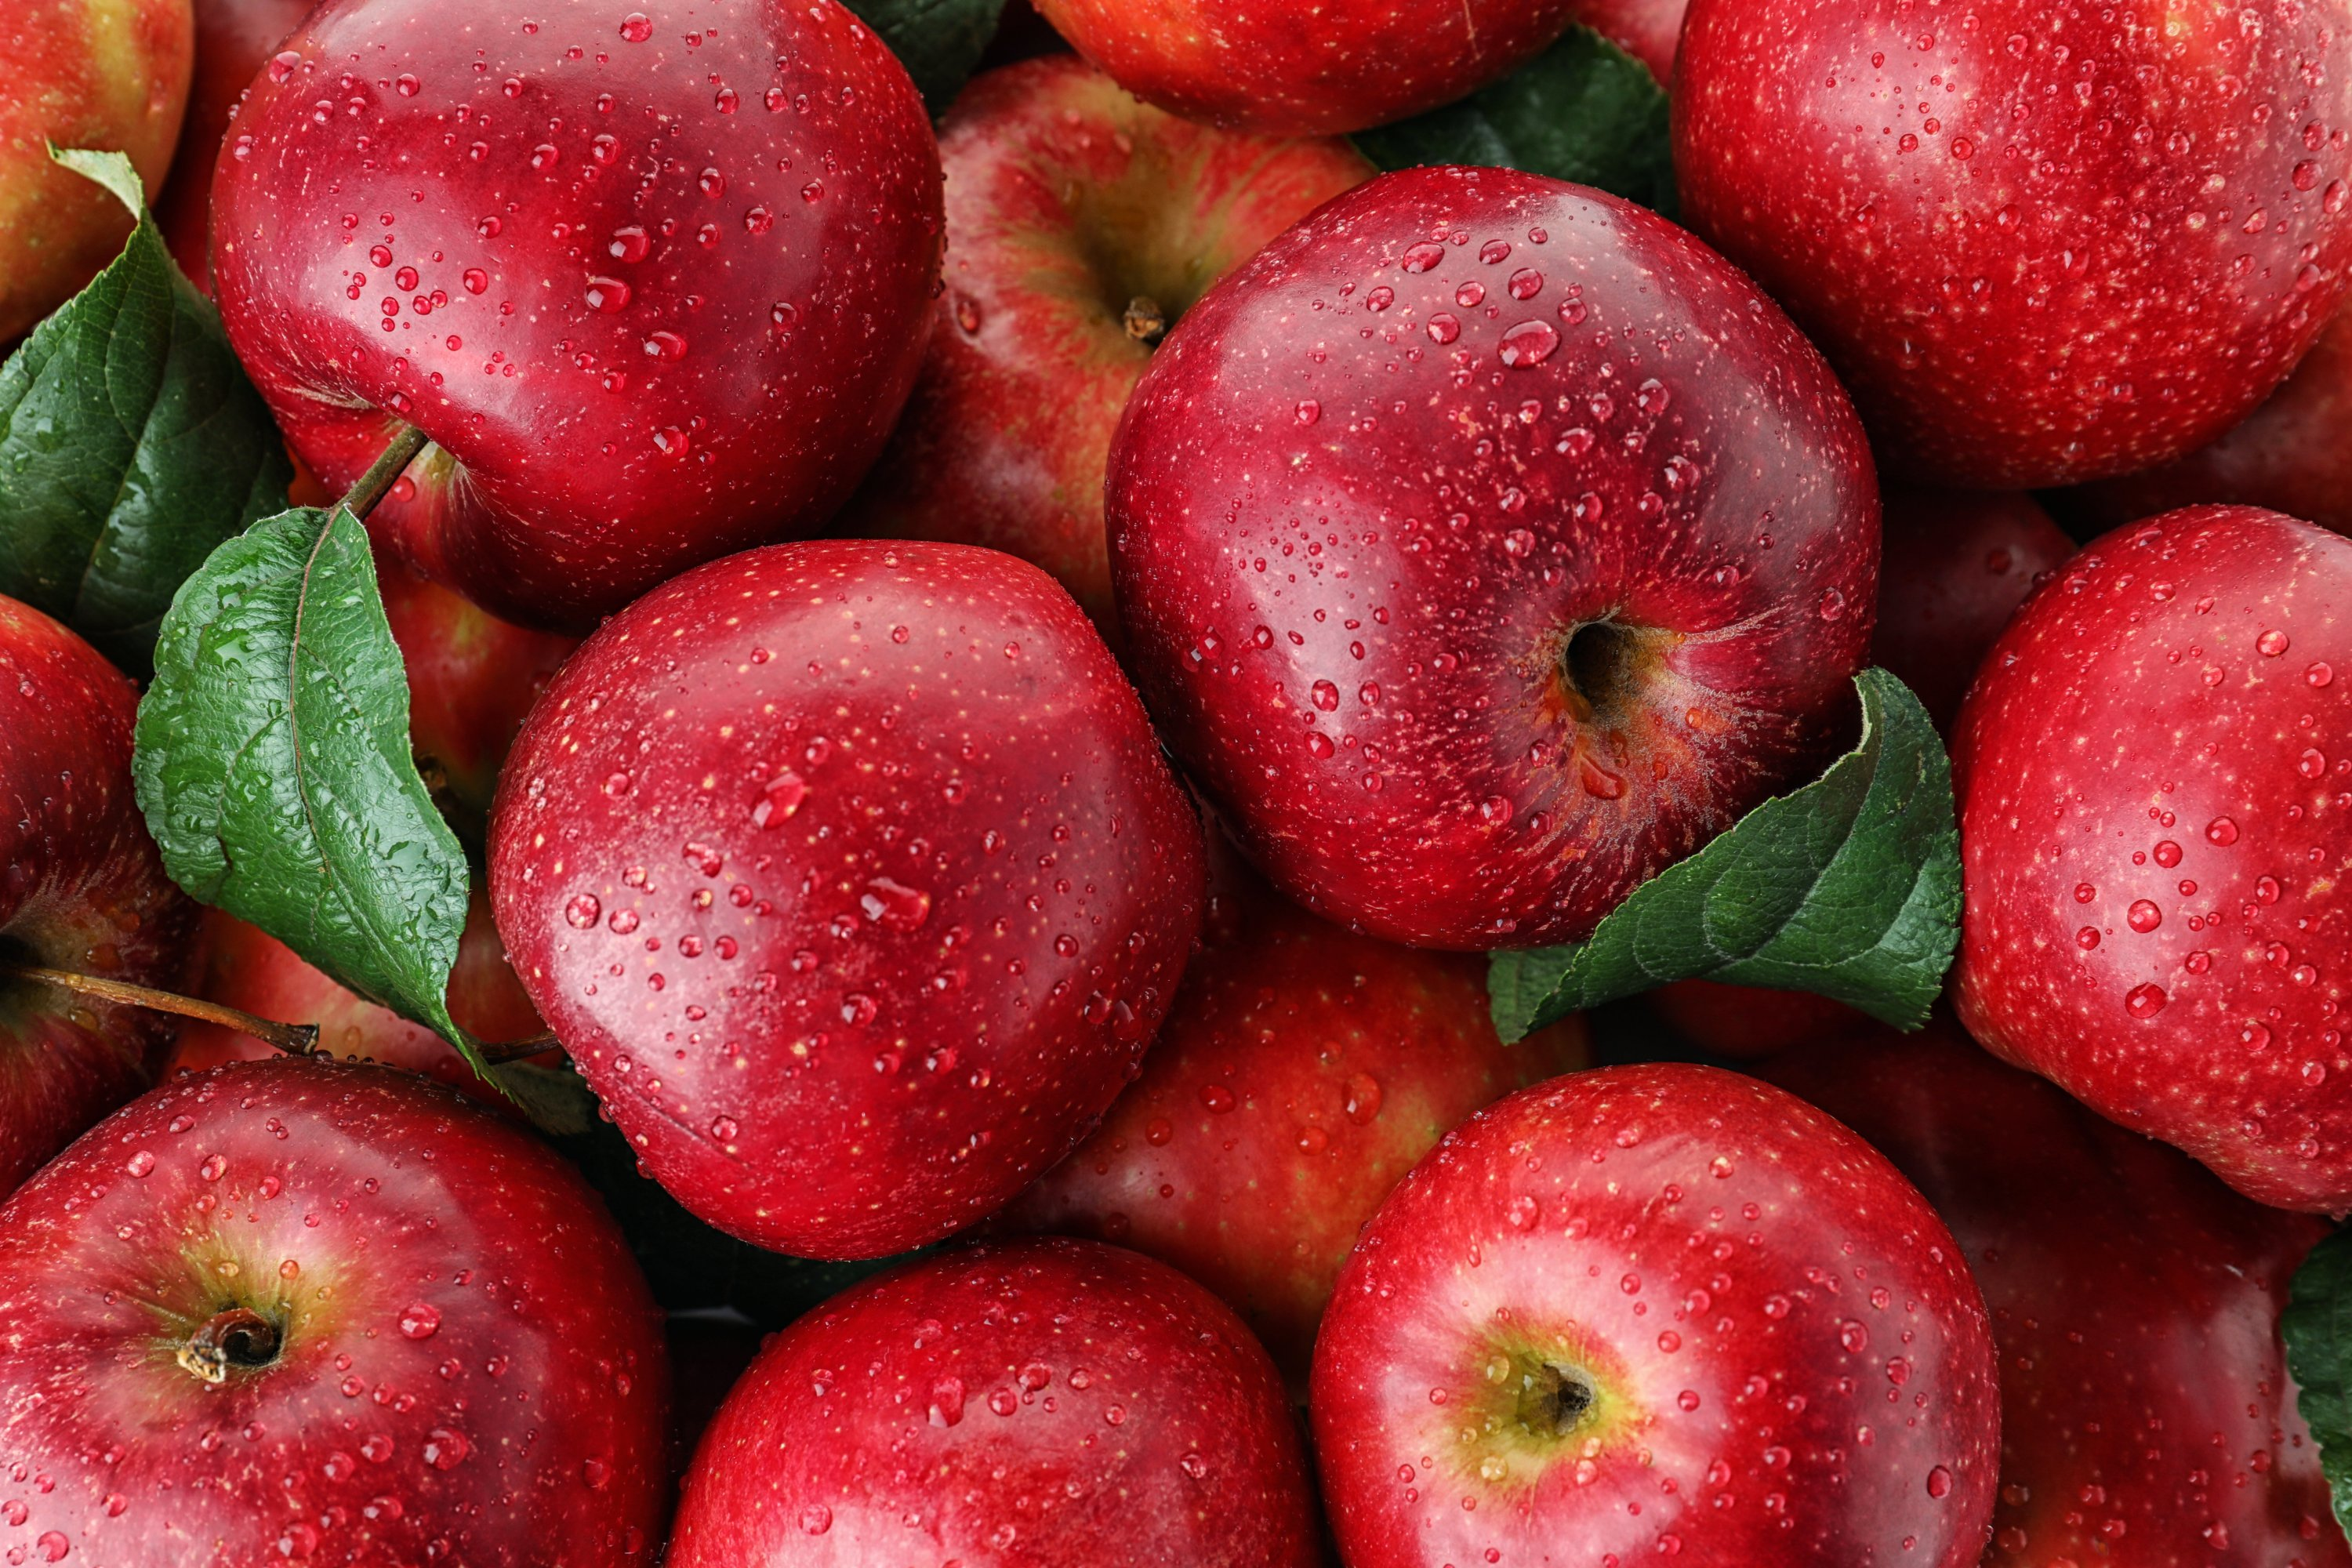 Turkish fruit producers get green light from Thailand's $210M apple market | Daily Sabah